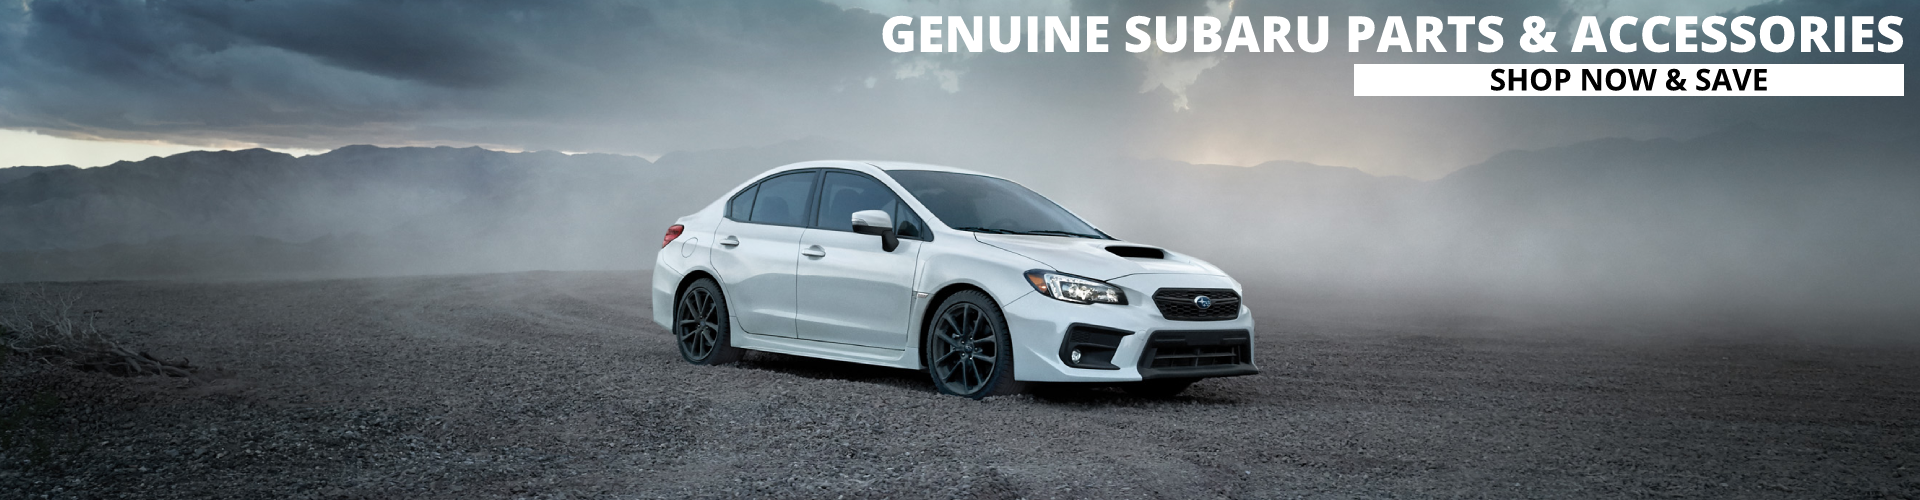 Subaru Parts and Accessories